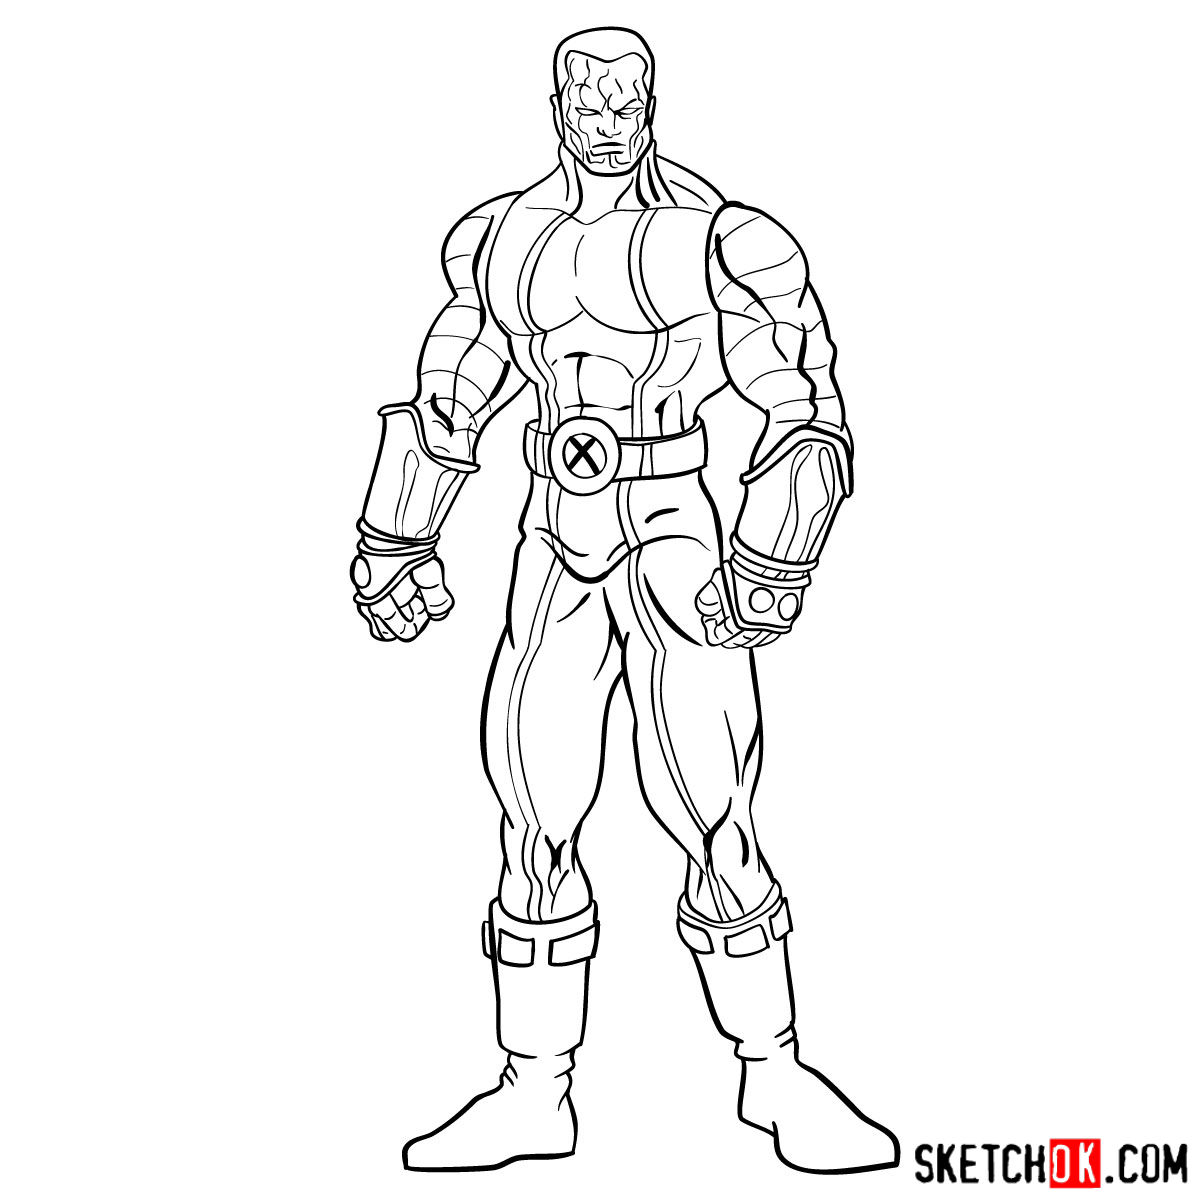 How to draw Colossus from Deadpool film and X-Men series - step 15